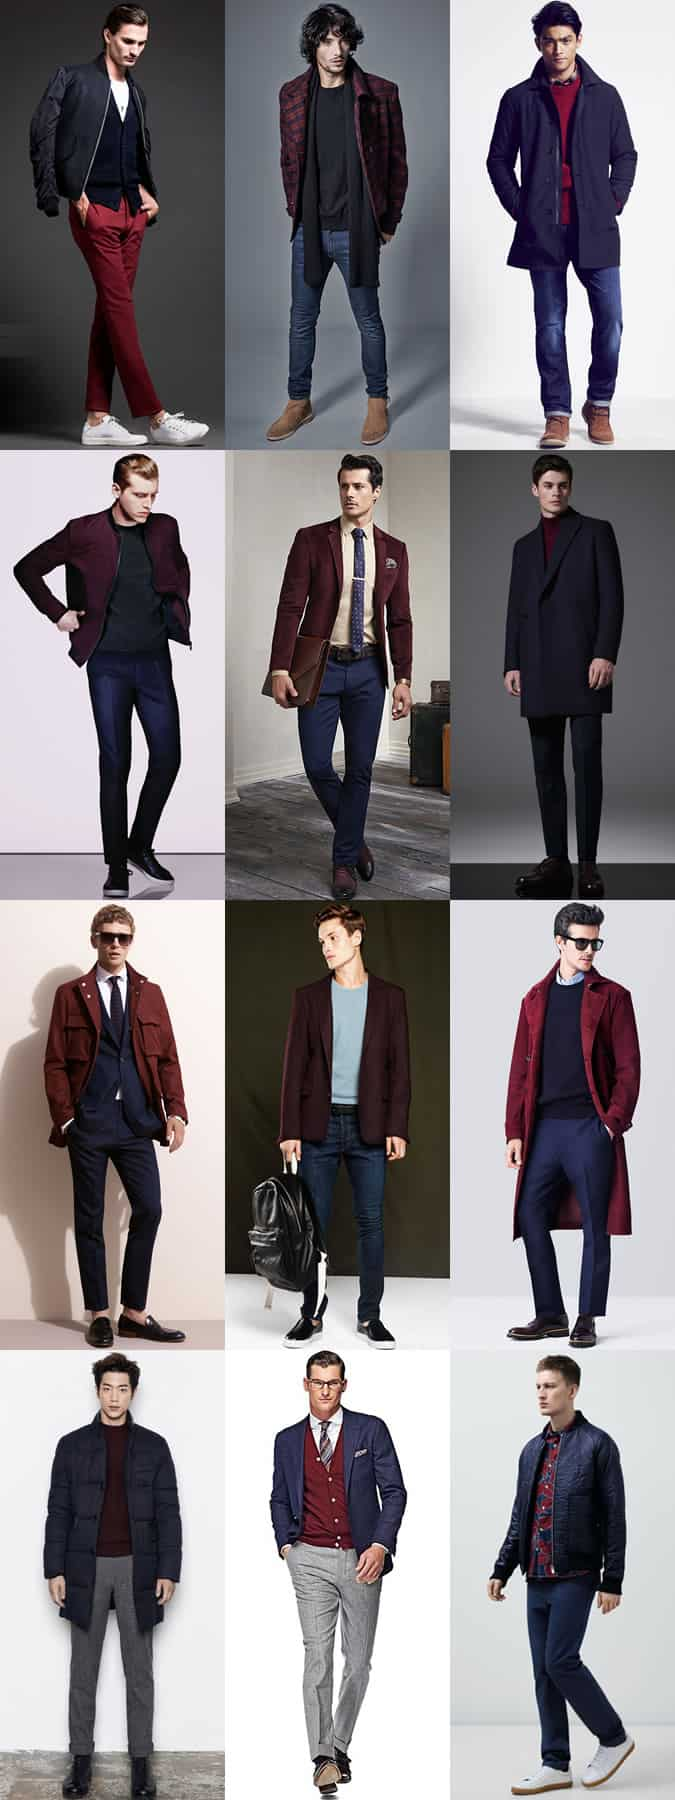 Men's Navy and Burgundy Colour Combination Outfit Examples Lookbook